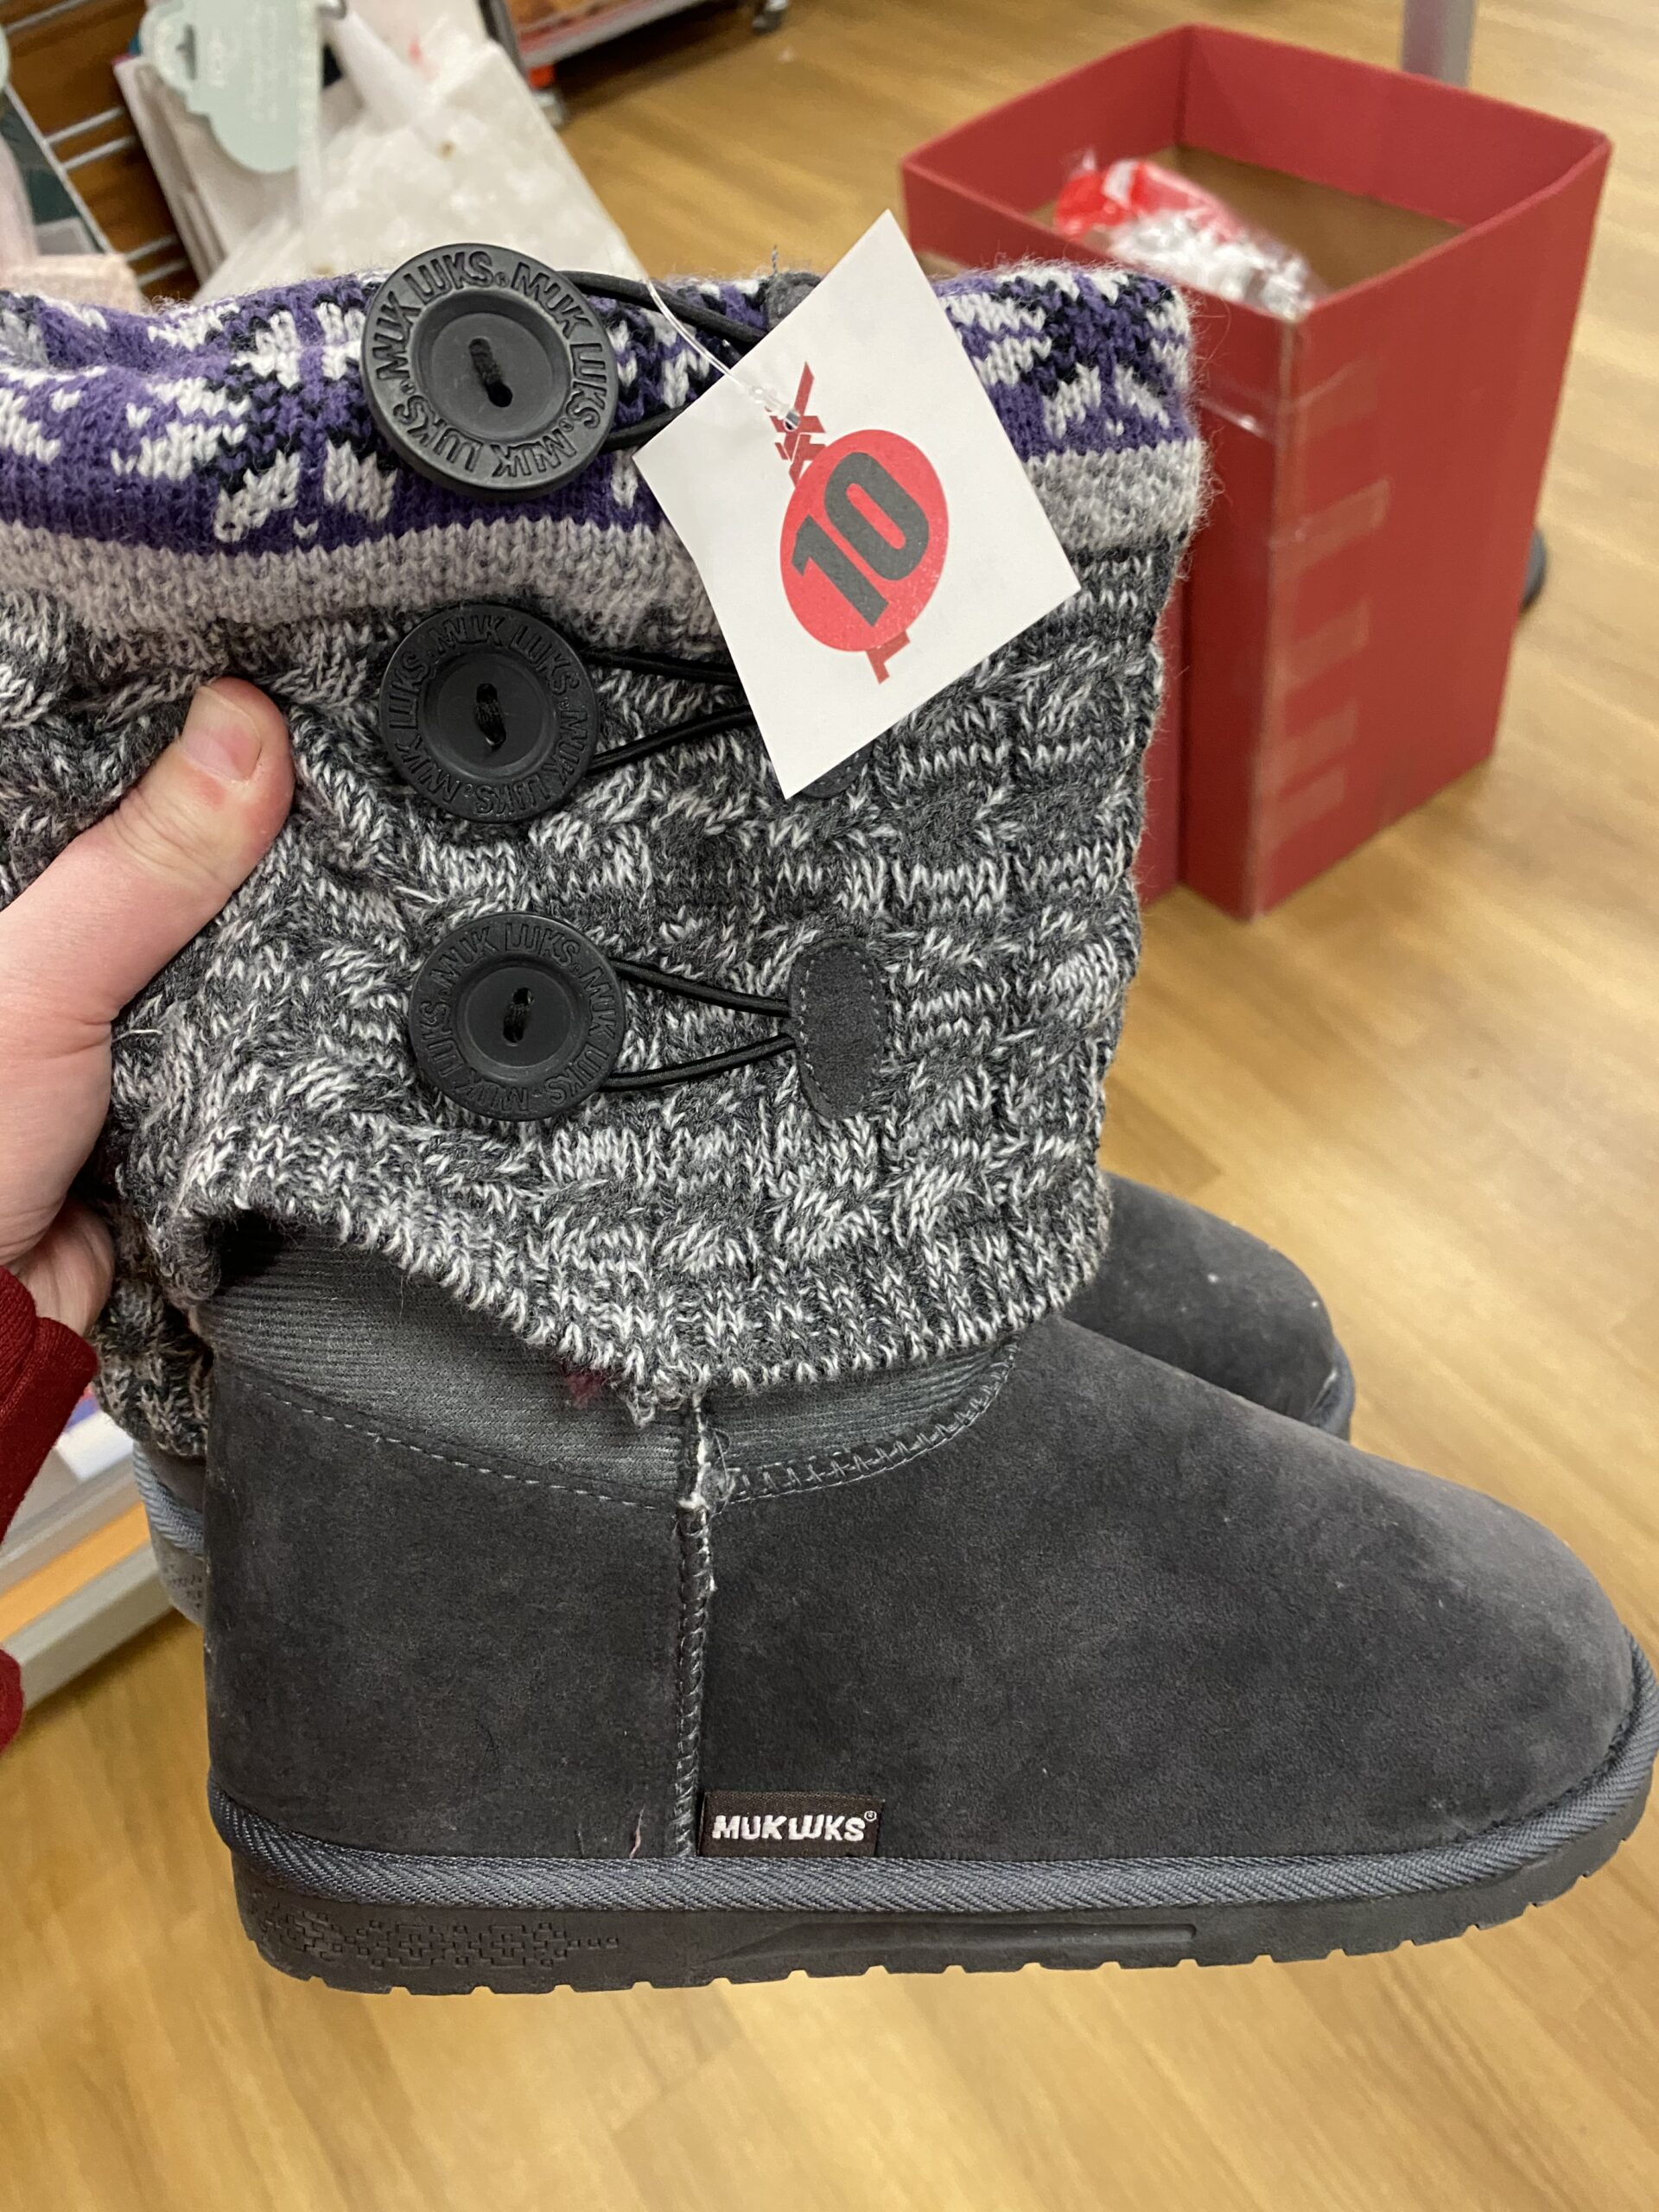 MUK LUKS Women's Boots as low as $19.99! Includes my FAVORITE Boots!